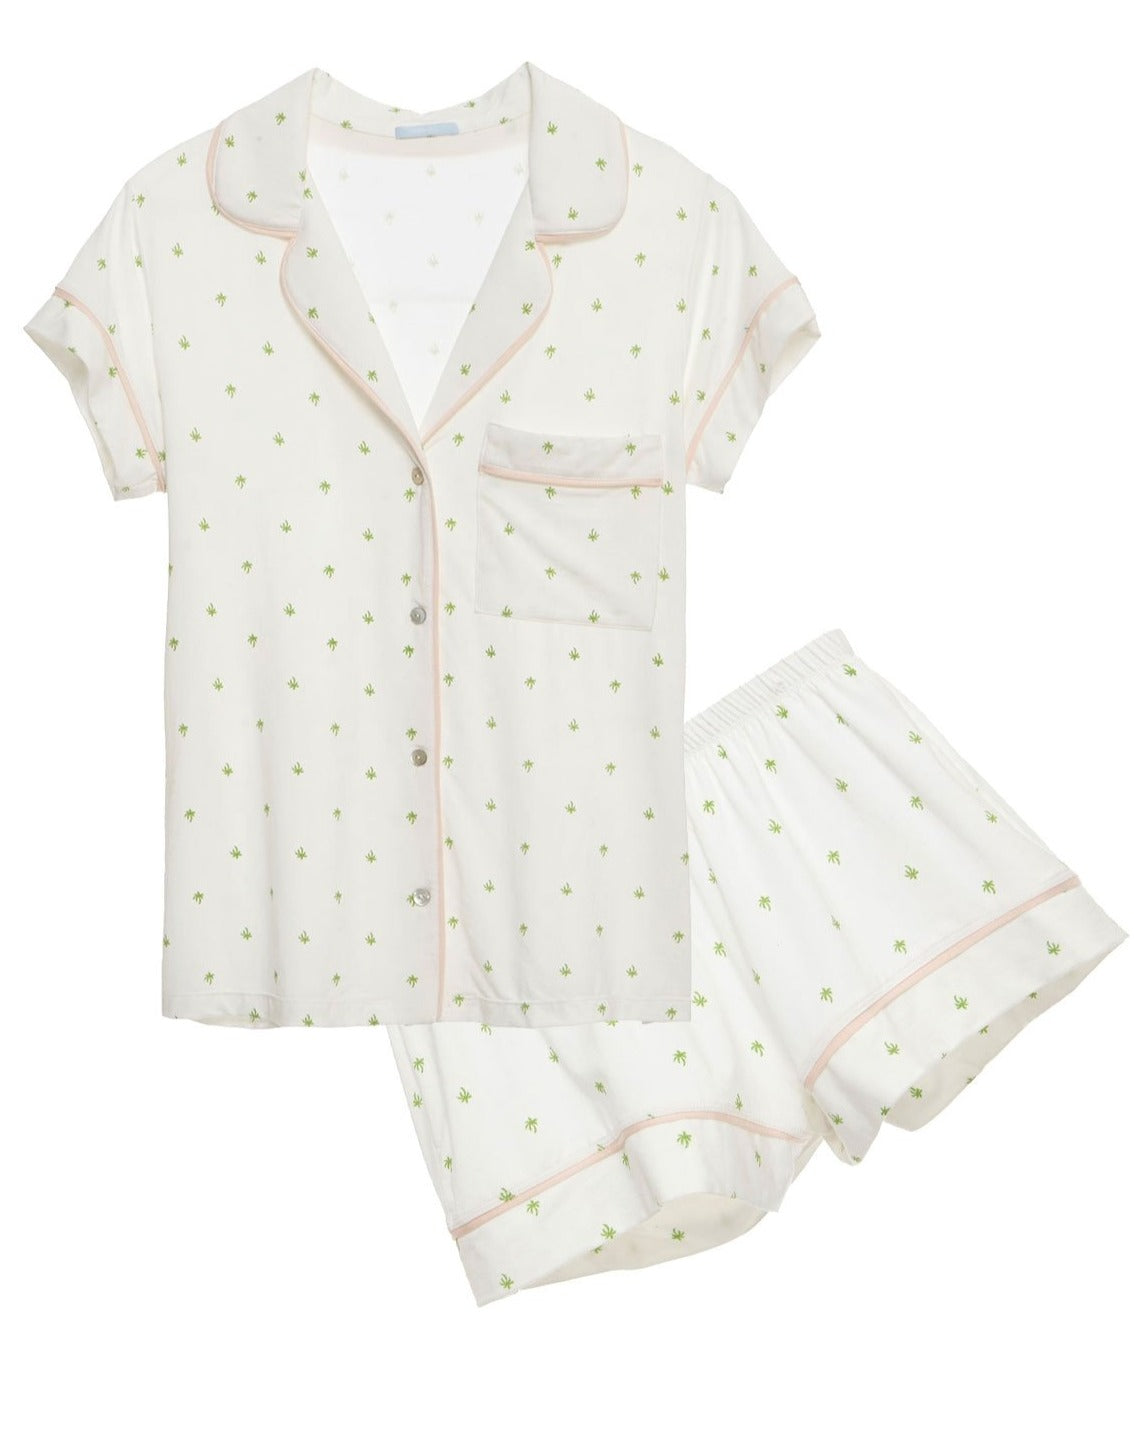 The Giving Palm Short PJ Set